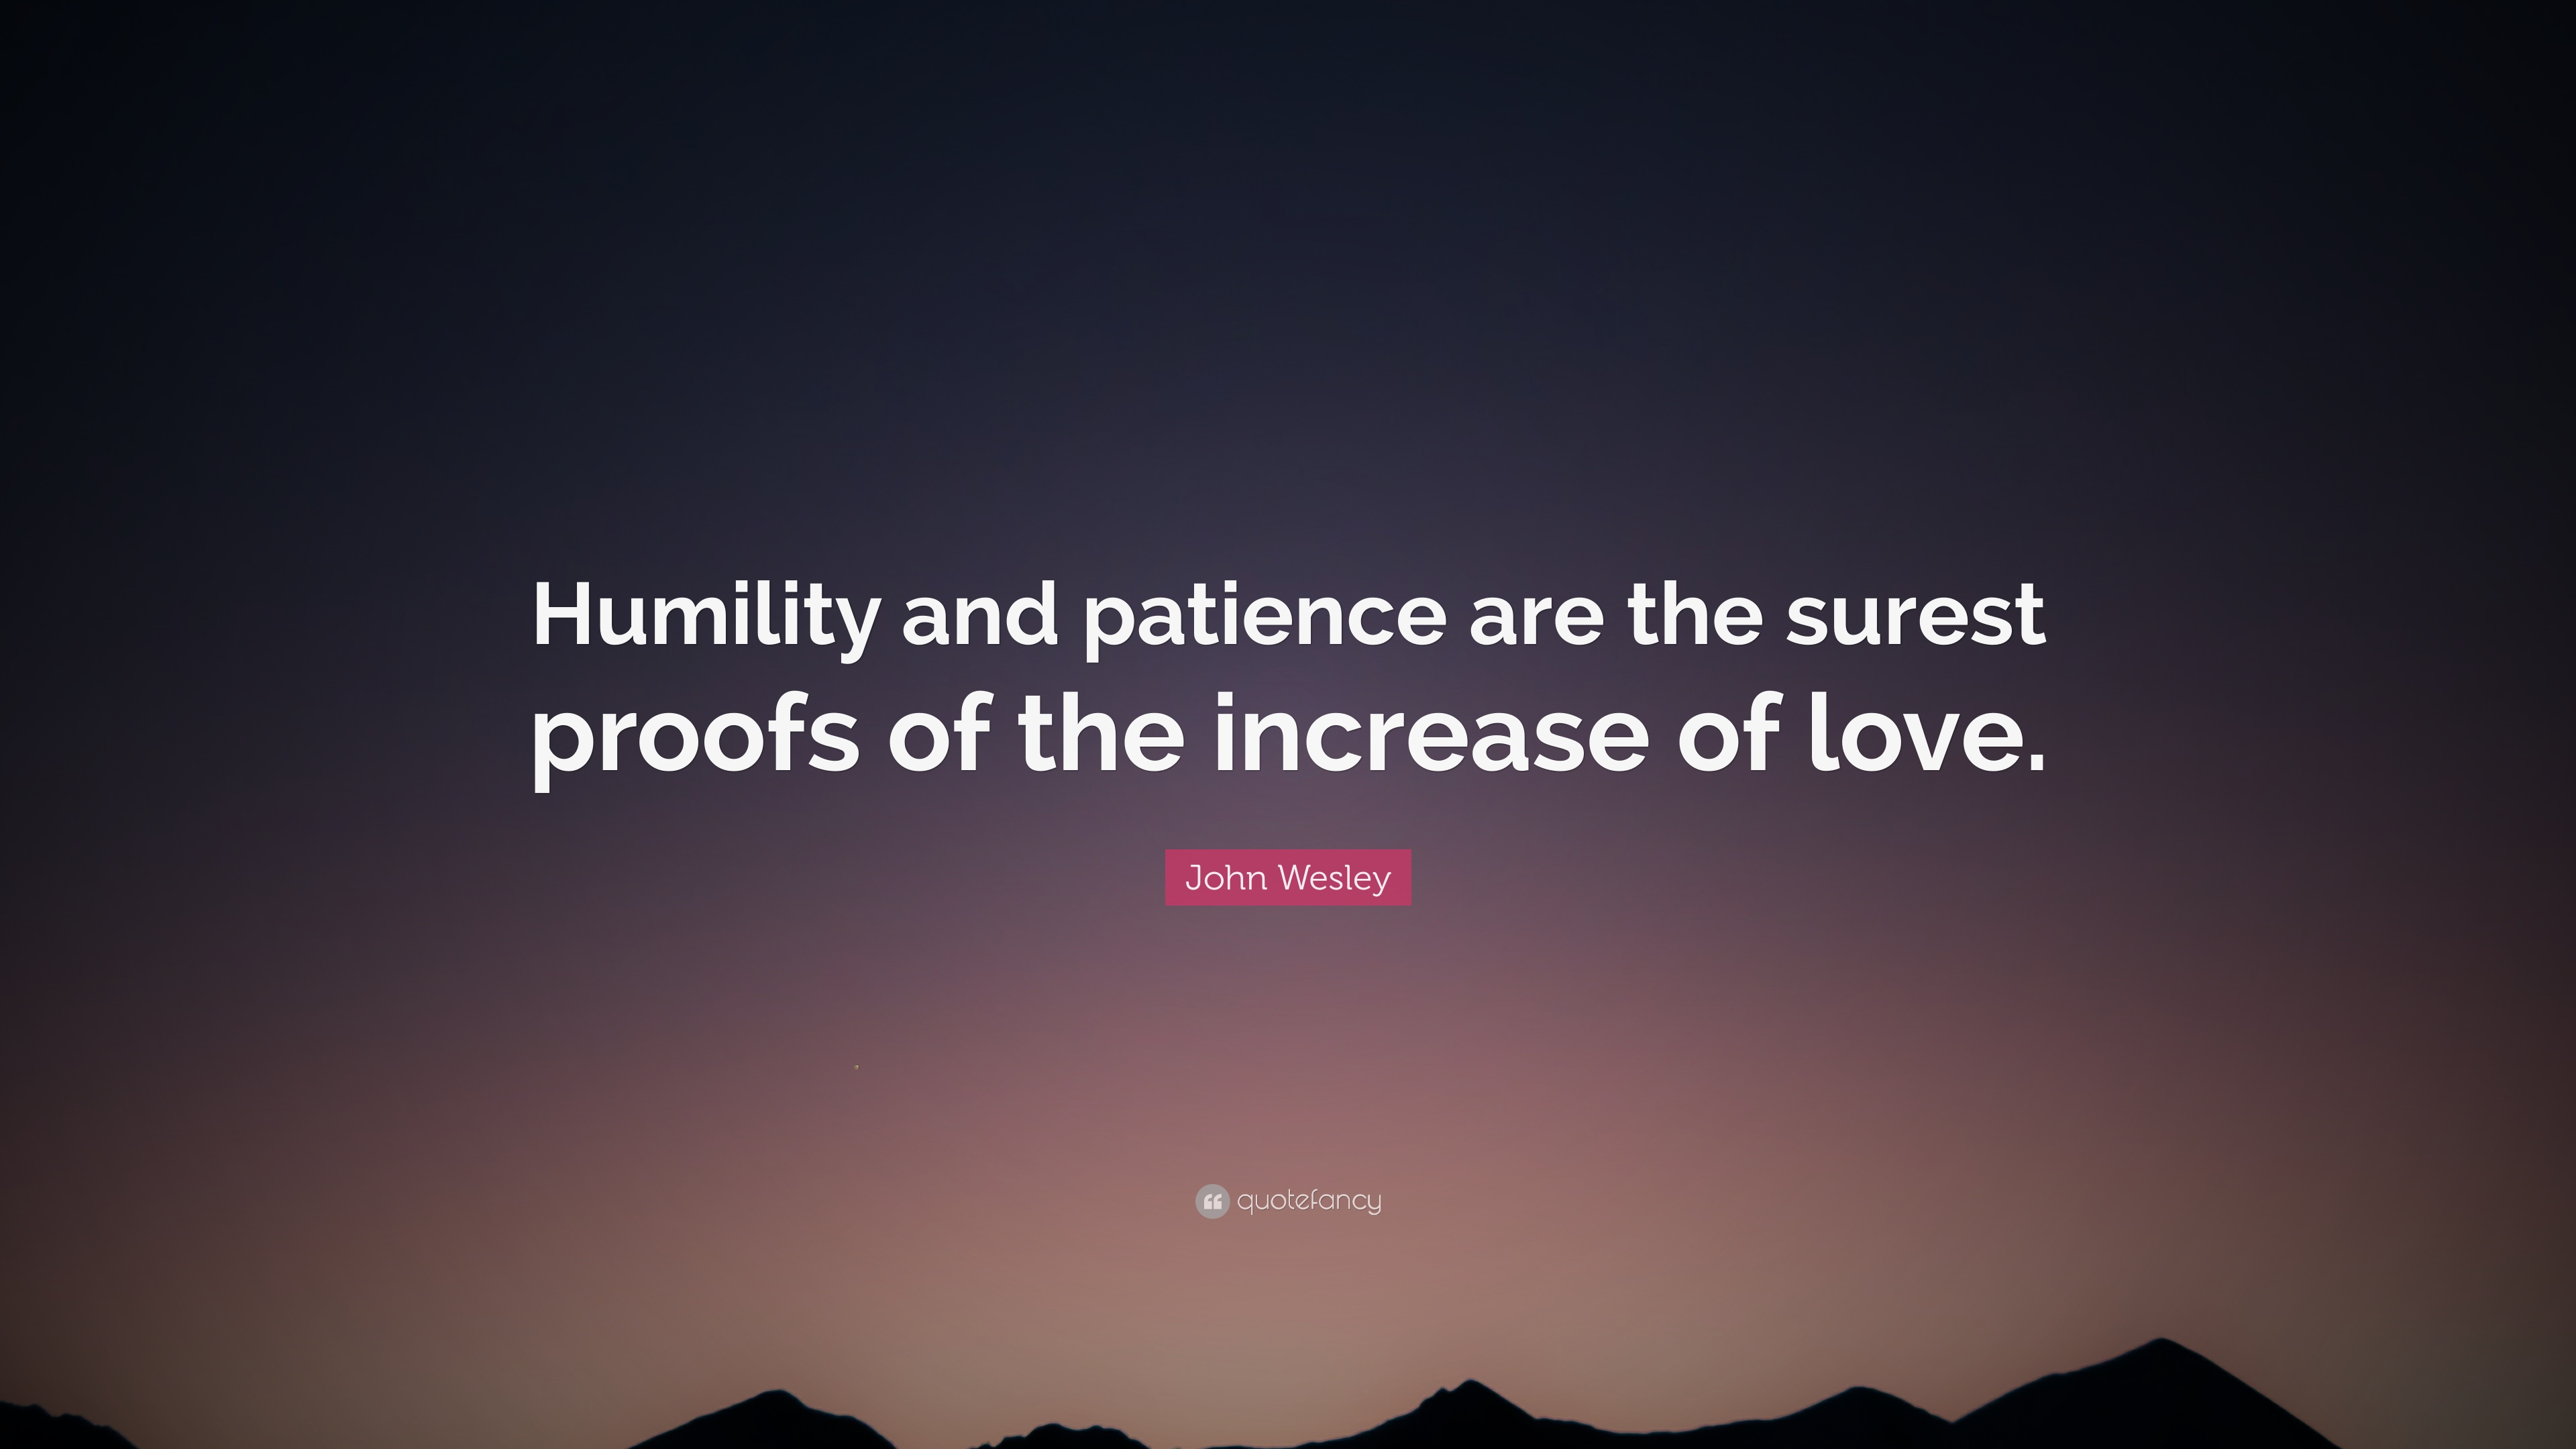 Humility Quotes | John Wesley Quote Humility And Patience Are The Surest Proofs Of